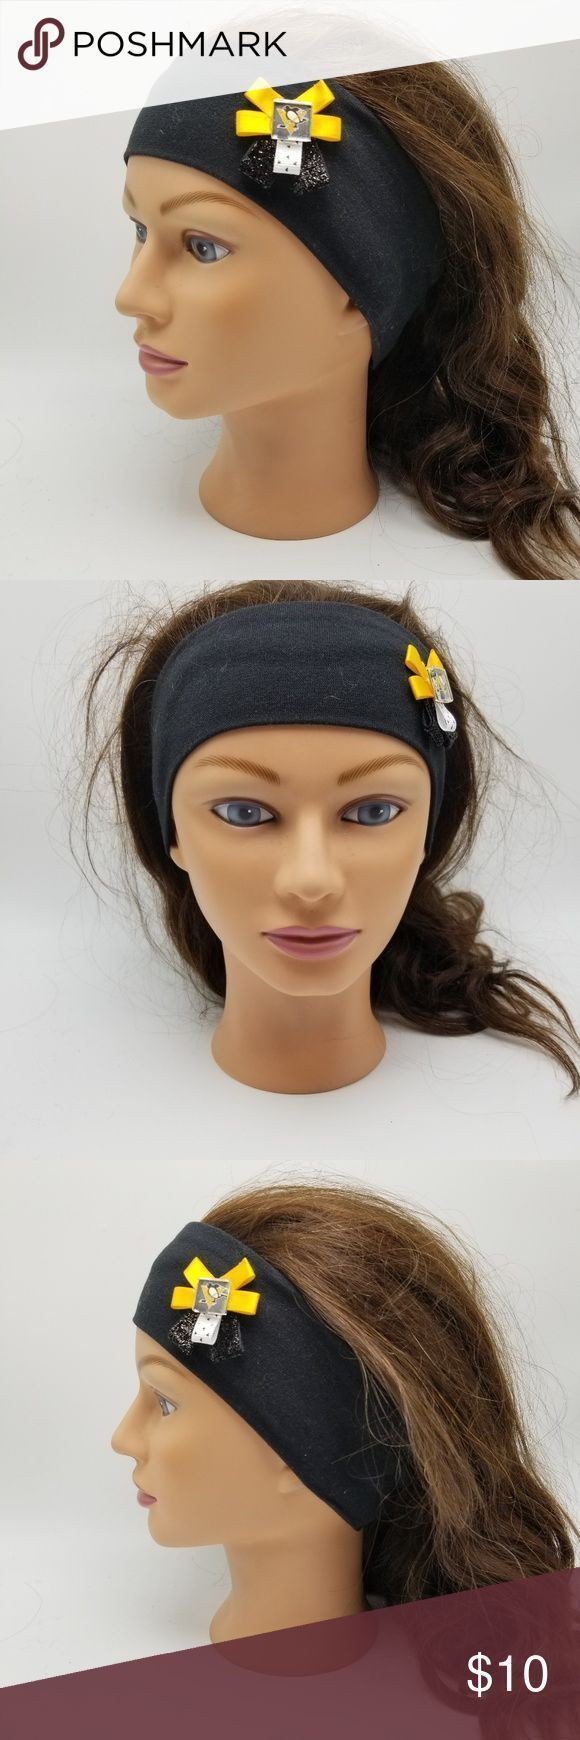 Pittsburgh Penguins Headband NHL Yoga Headband Pittsburgh Penguins Headband NHL ...  - My Posh Picks - #headband #NHL #Penguins #Picks #Pittsburgh #Posh #Yoga #yogaheadband Pittsburgh Penguins Headband NHL Yoga Headband Pittsburgh Penguins Headband NHL ...  - My Posh Picks - #headband #NHL #Penguins #Picks #Pittsburgh #Posh #Yoga #yogaheadband Pittsburgh Penguins Headband NHL Yoga Headband Pittsburgh Penguins Headband NHL ...  - My Posh Picks - #headband #NHL #Penguins #Picks #Pittsburgh #Posh # #yogaheadband